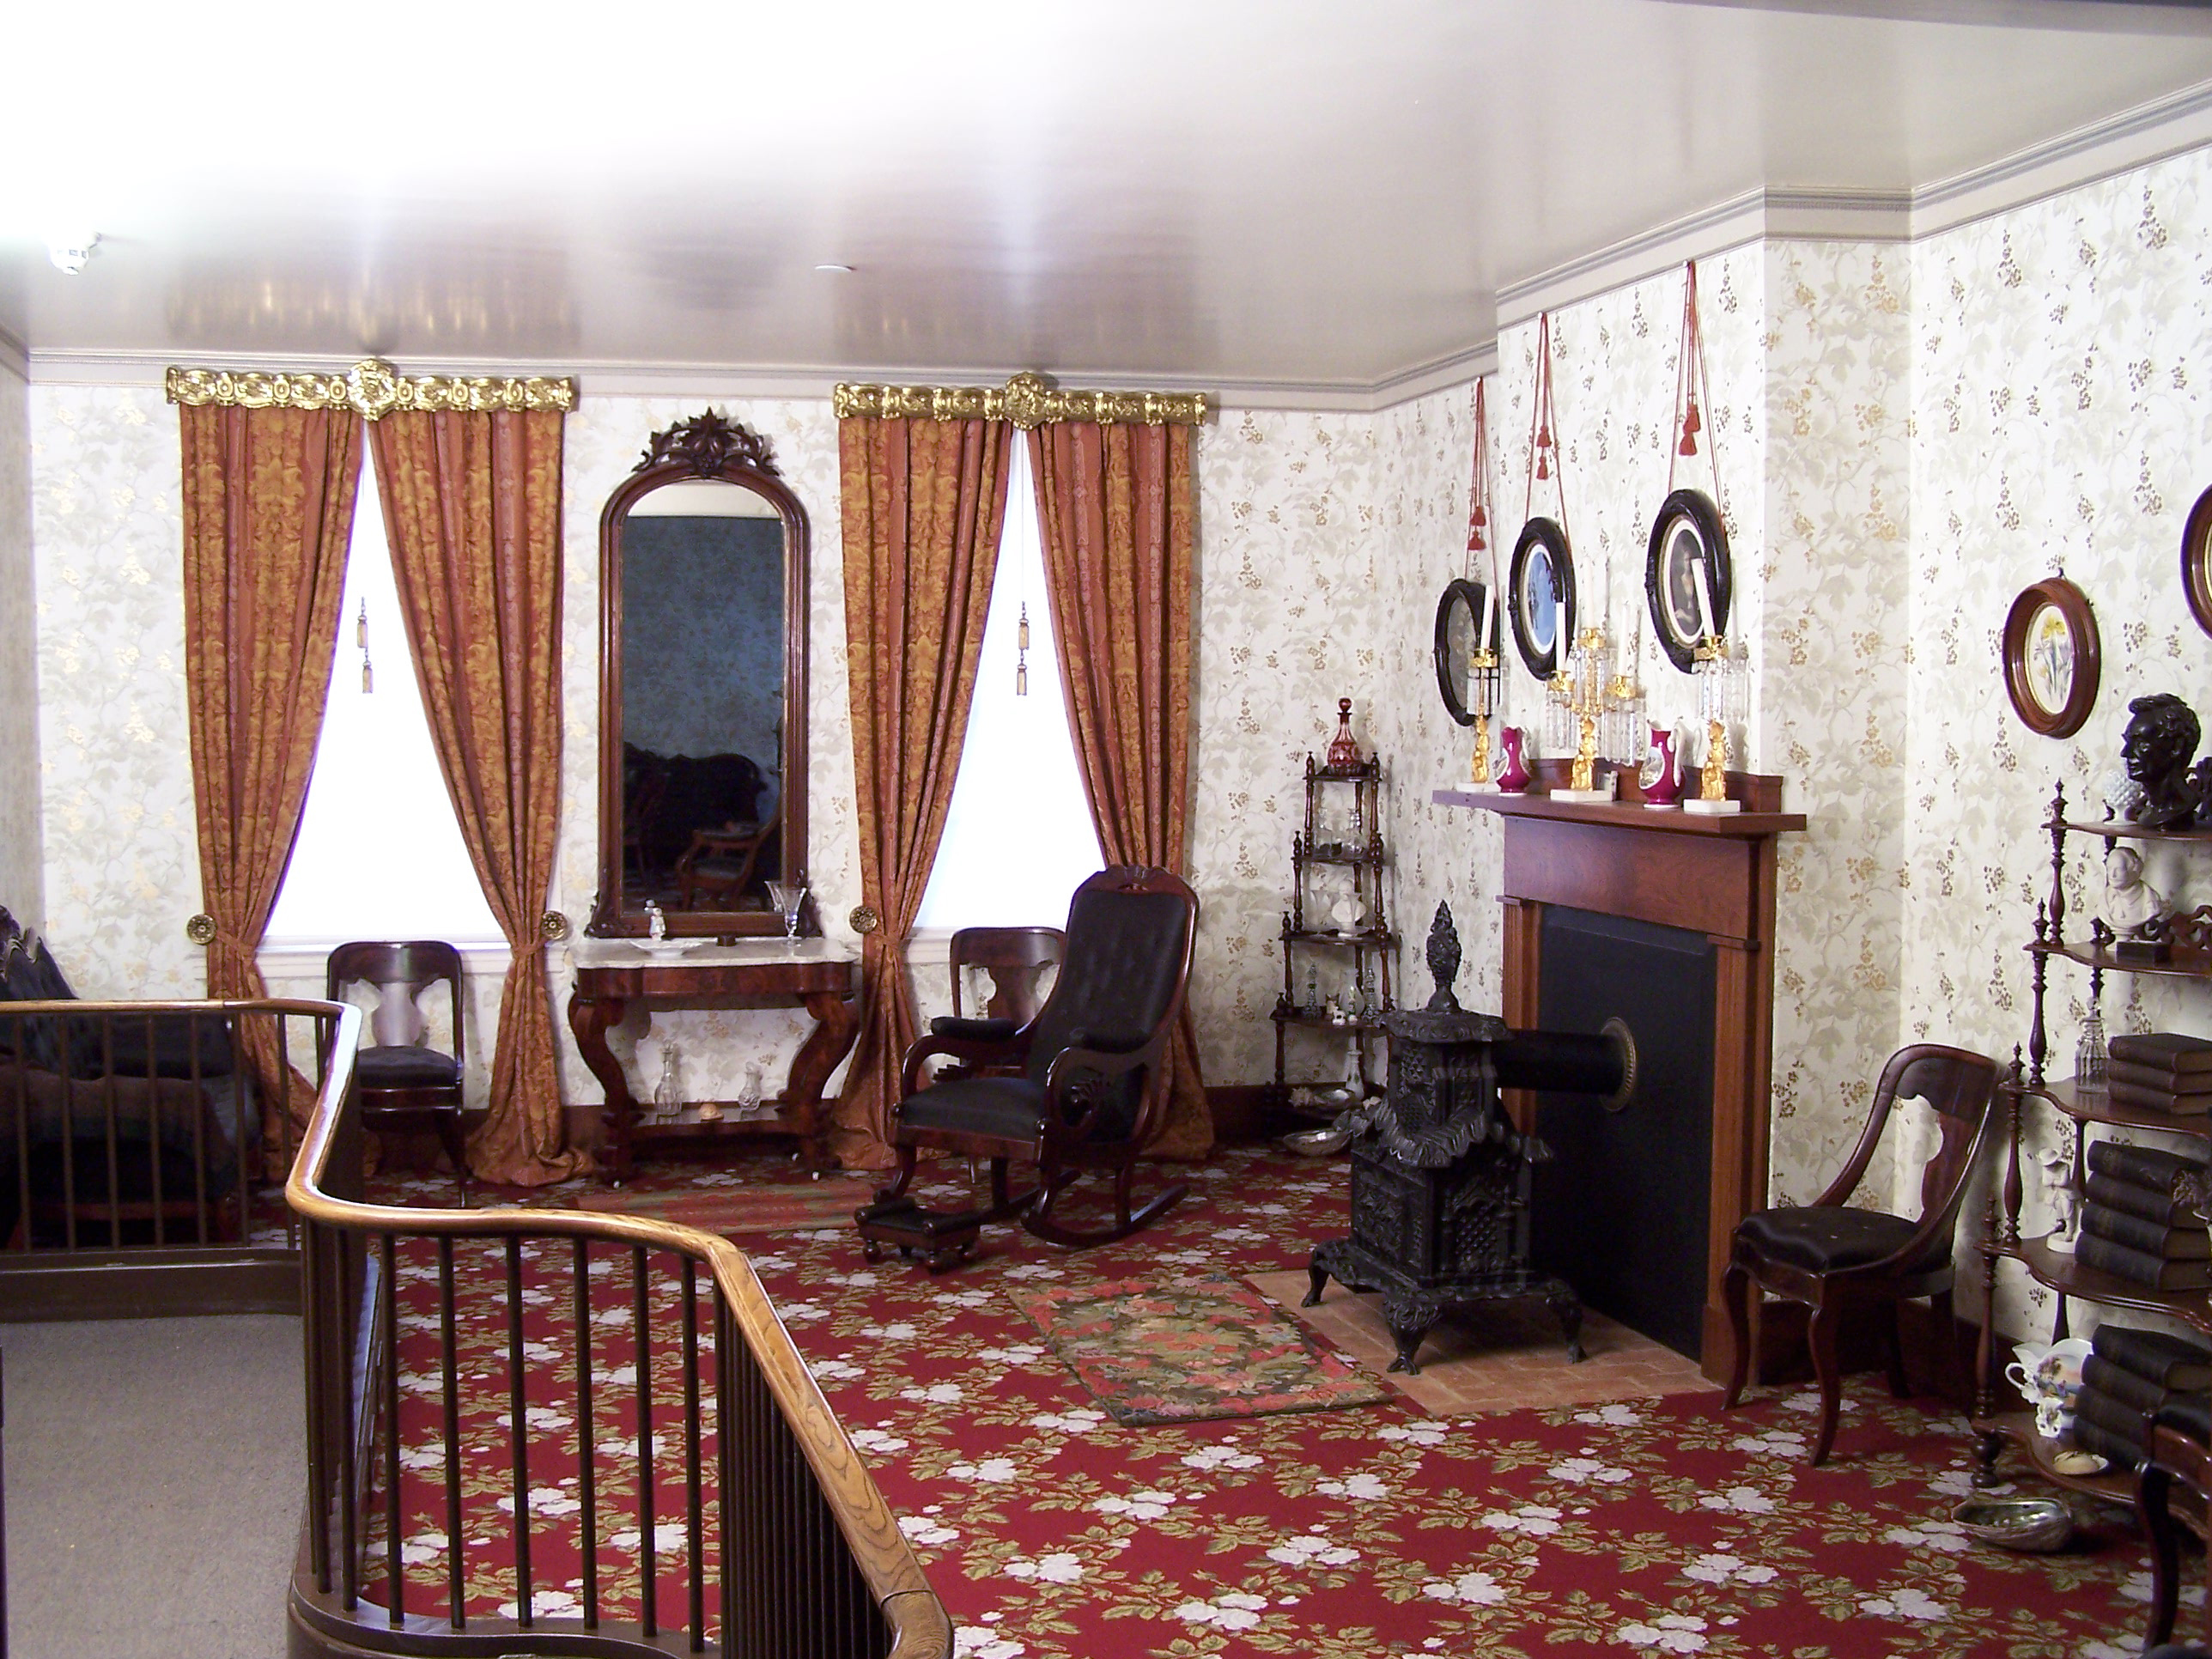 file lincoln home national historic site liho front parlor